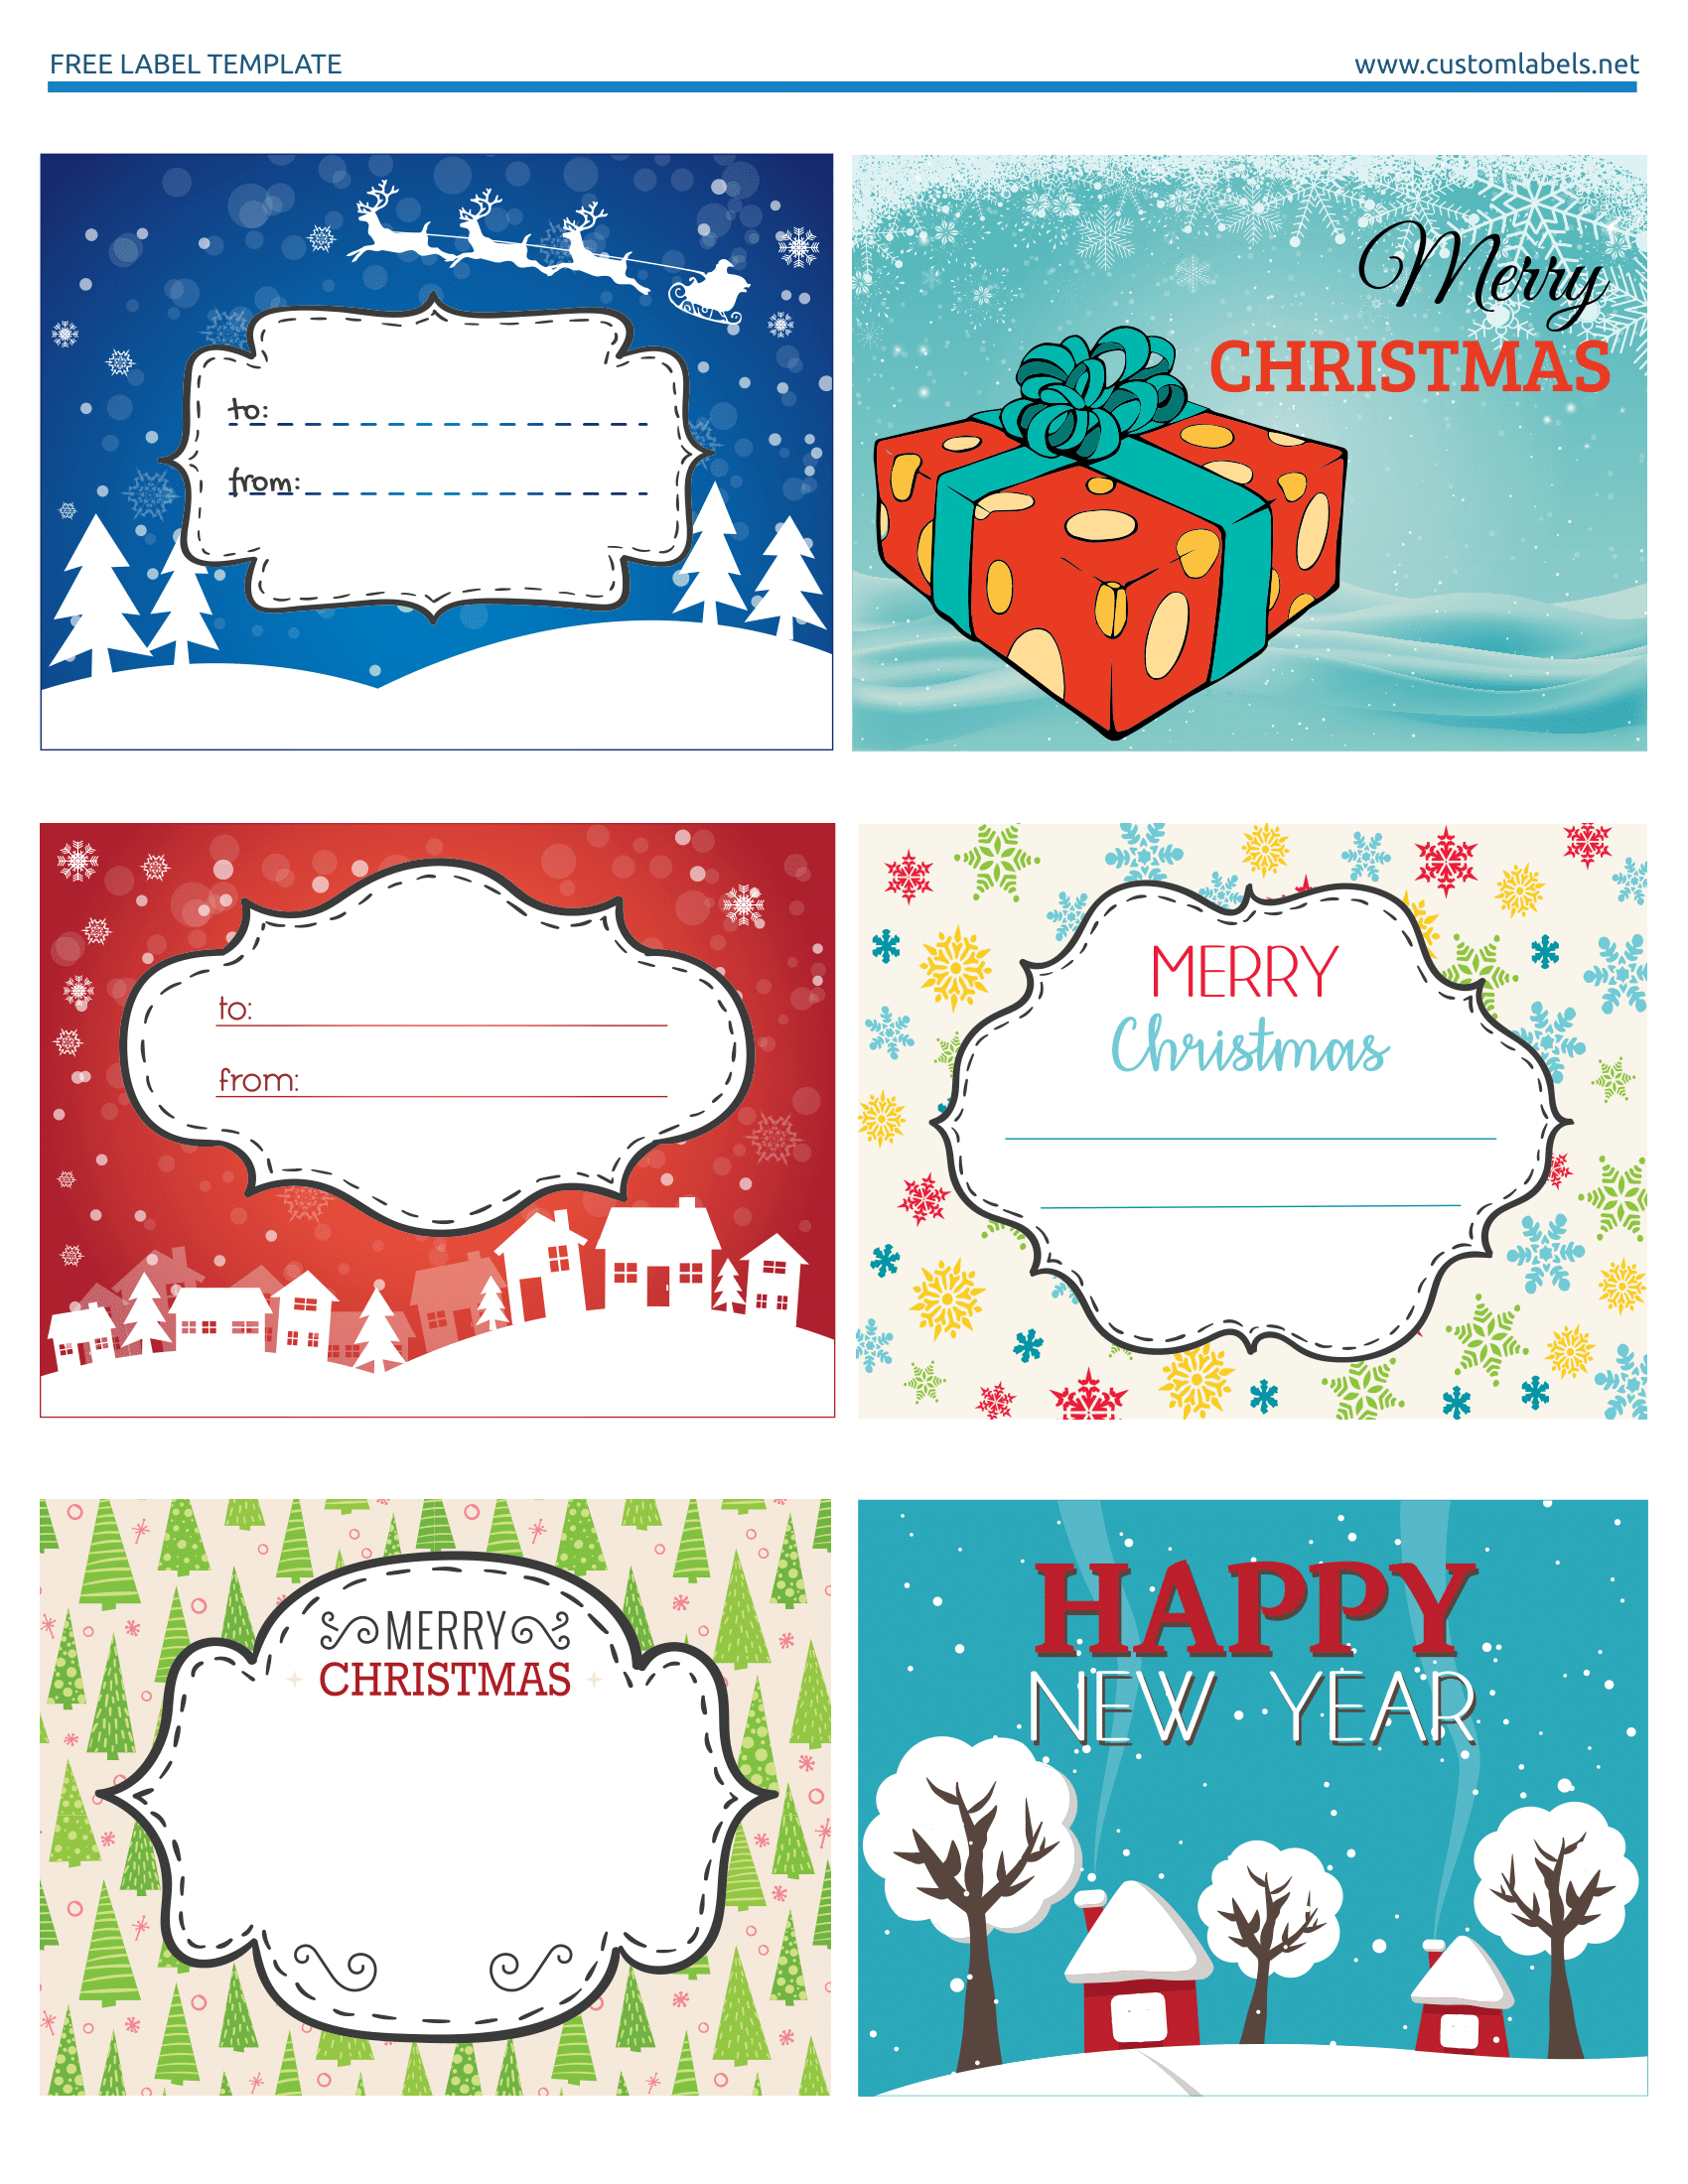 008 Template Ideas Gift Tag Word Fun Andolorfulhristmas Inside Free Gift Tag Templates For Word